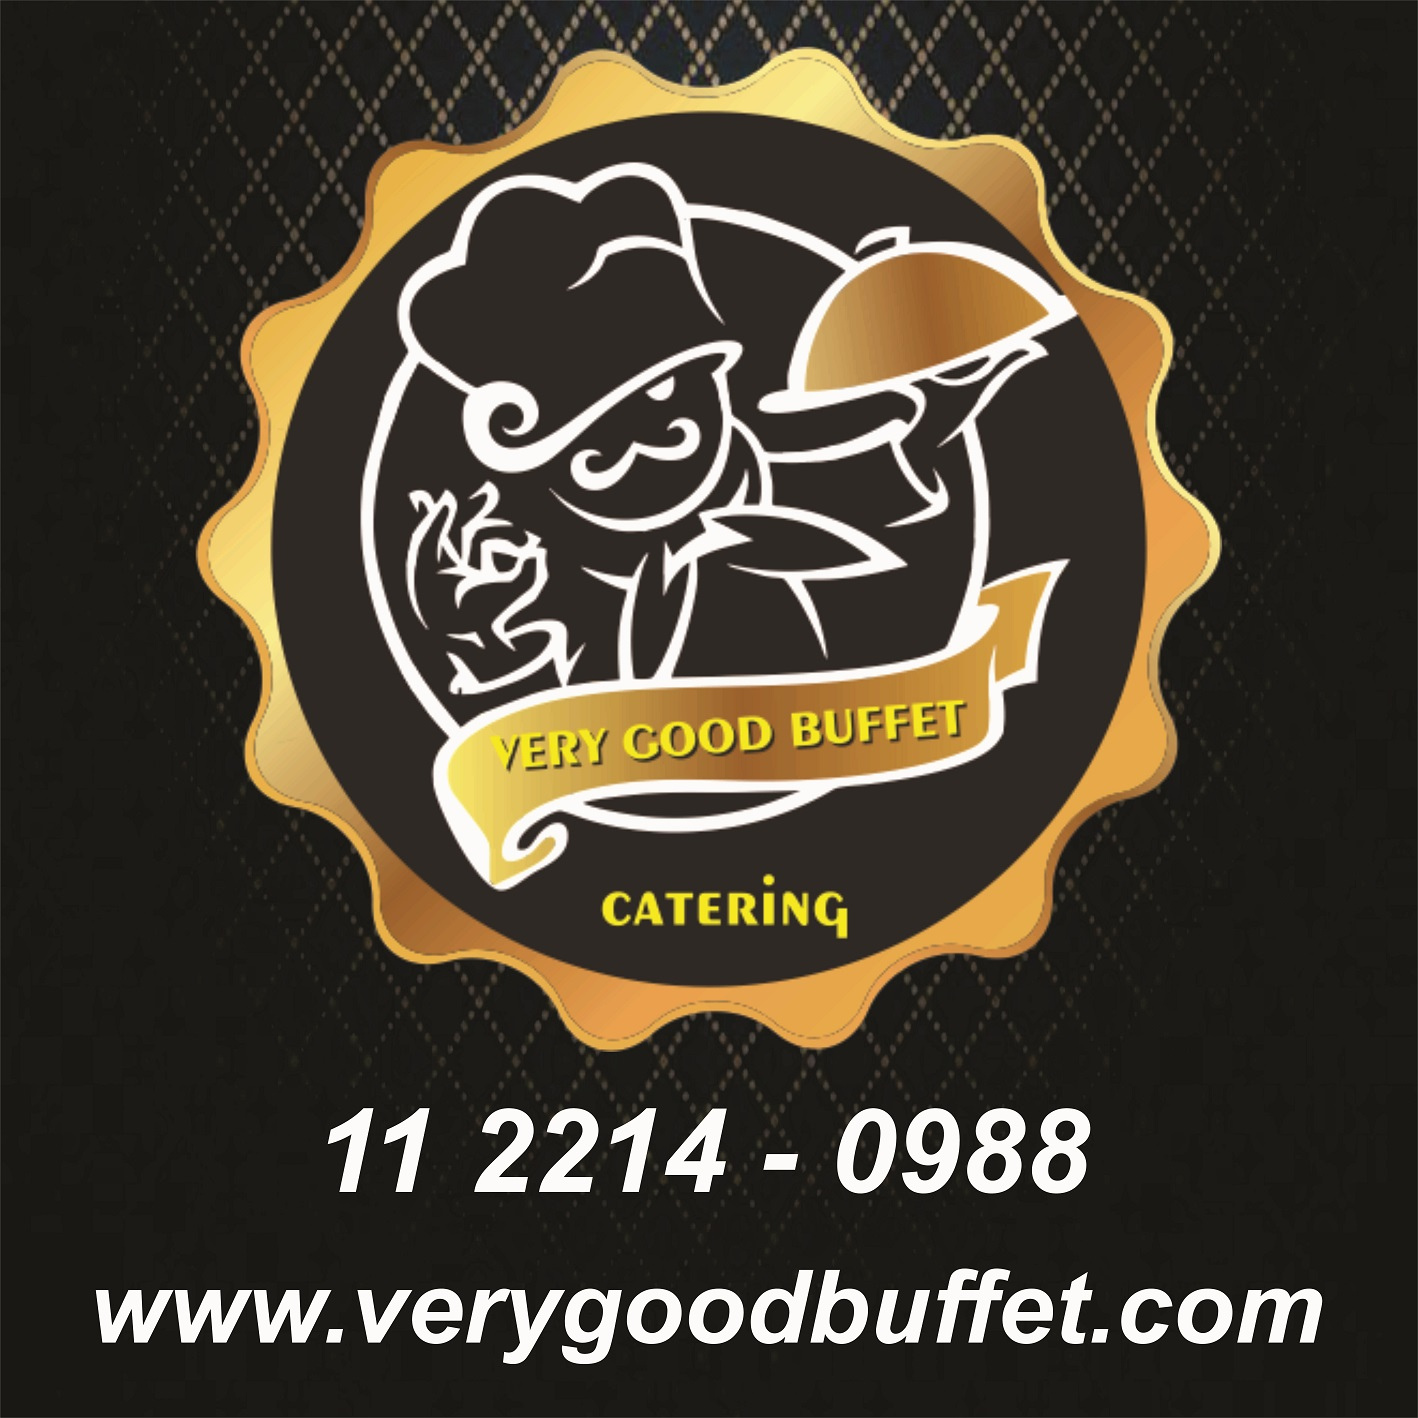 Very Good Buffet Catering